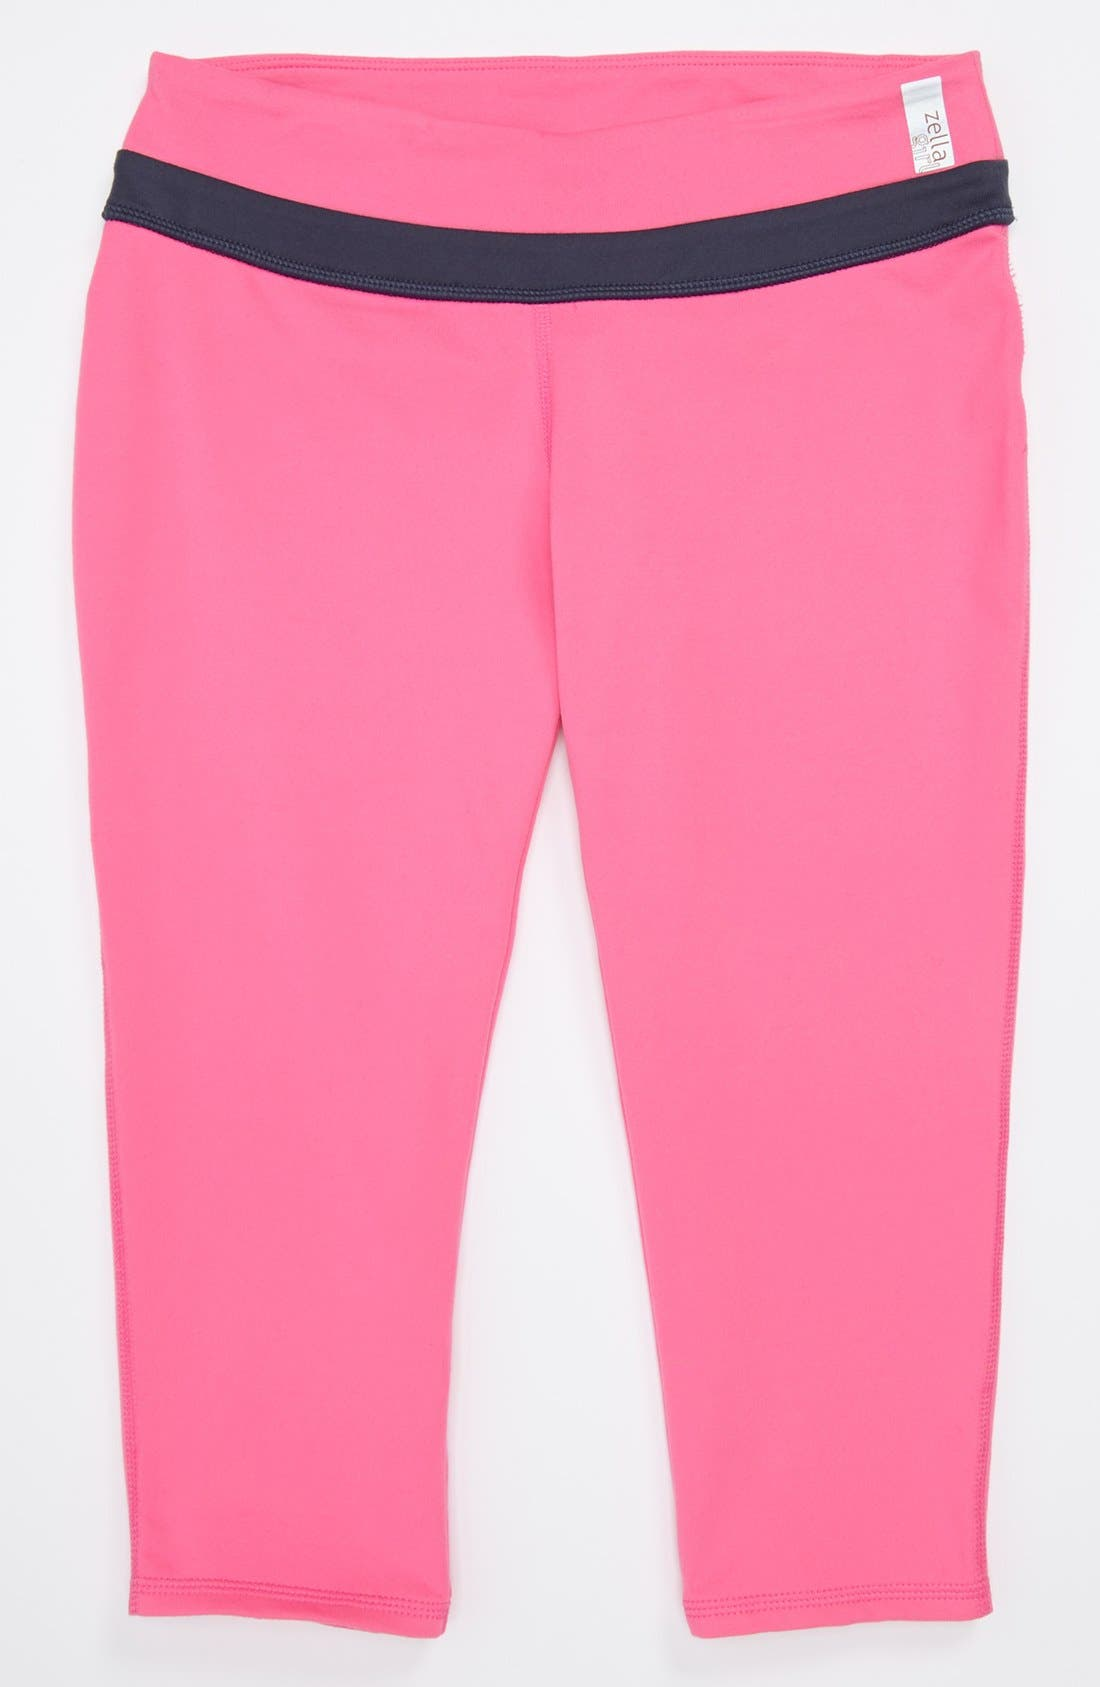 Main Image - Zella Girl 'Trainer' Capri Pants (Little Girls & Big Girls)